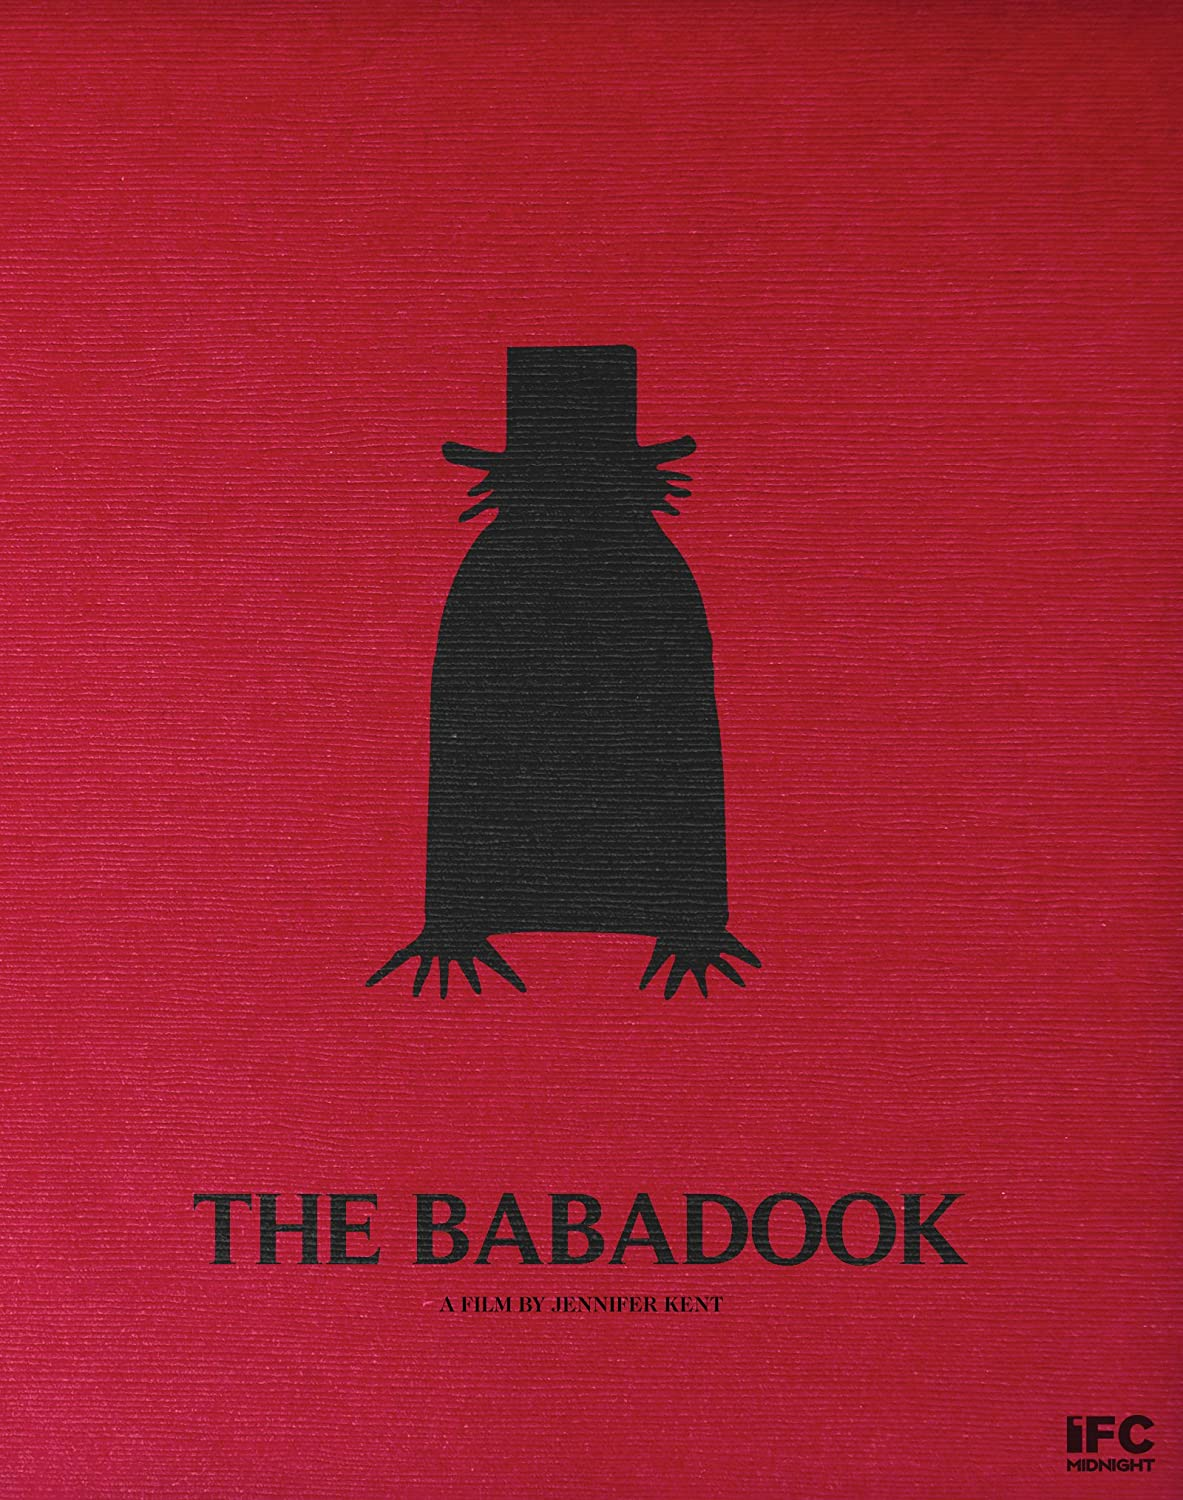 Amazon The Babadook Special Edition Deluxe Packaging Blu Ray Essie Davis Noah Wiseman Jennifer Kent Movies TV